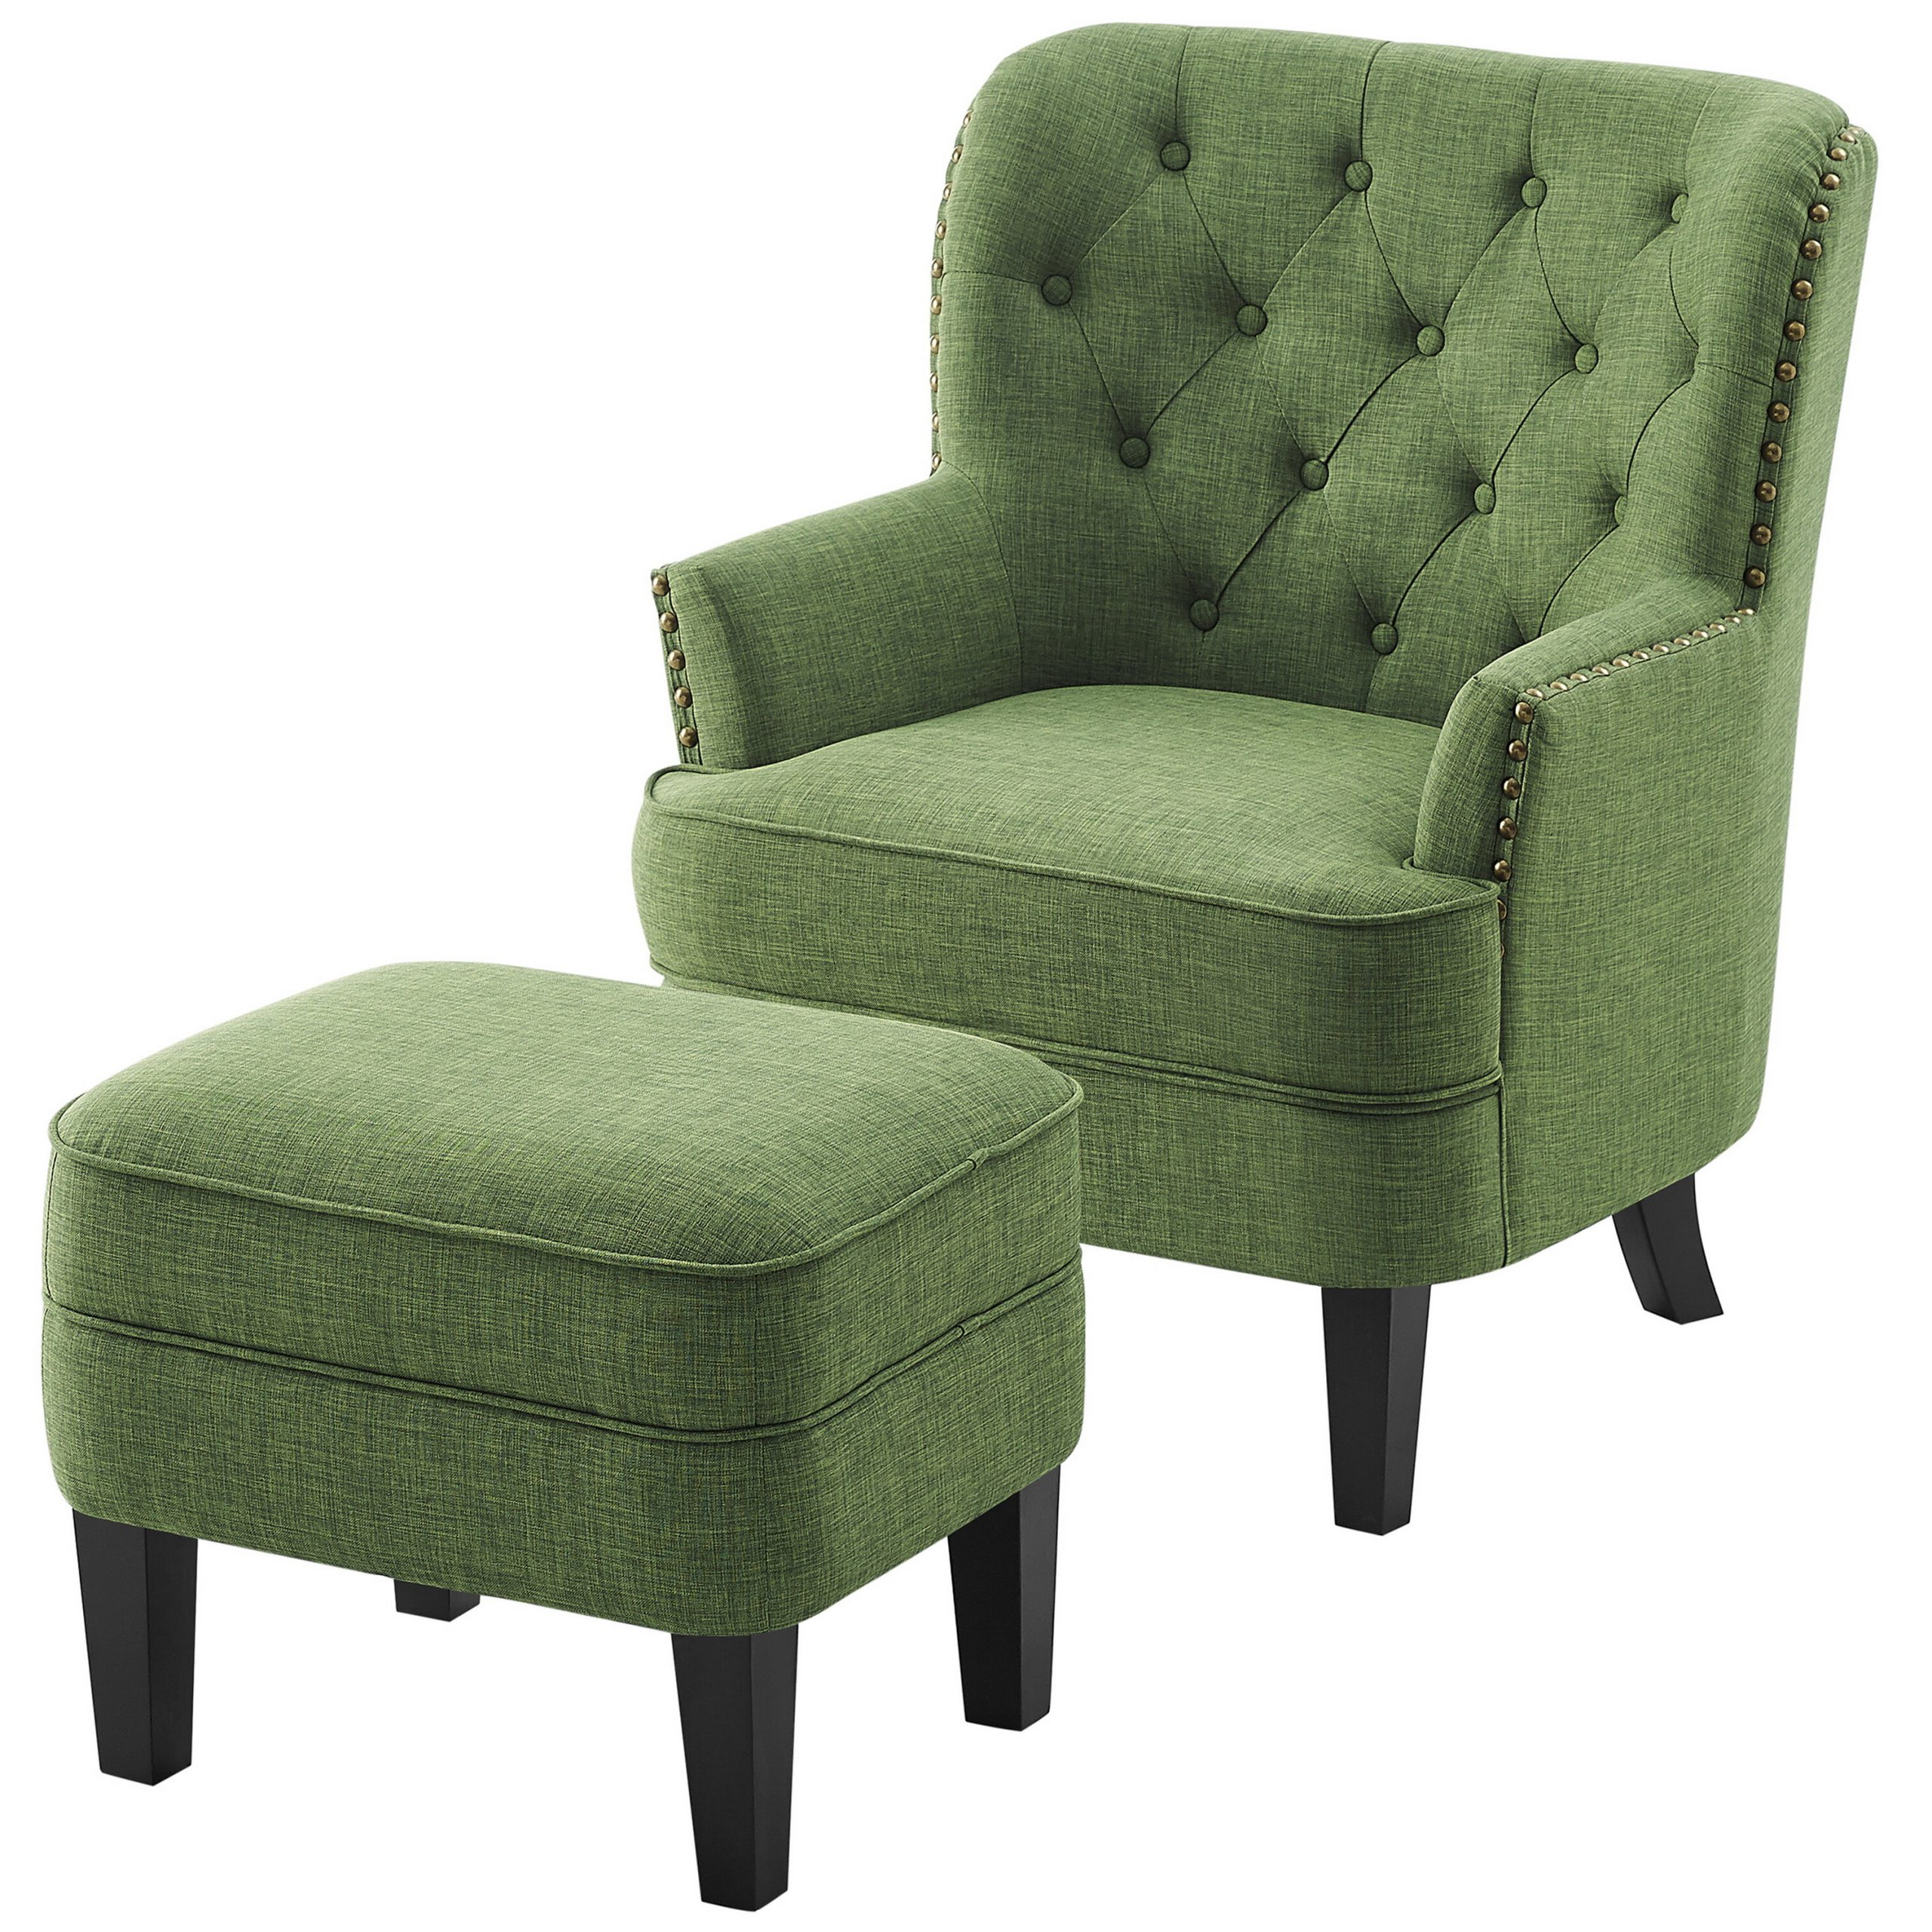 Wayfair Within Harmon Cloud Barrel Chairs And Ottoman (View 16 of 20)